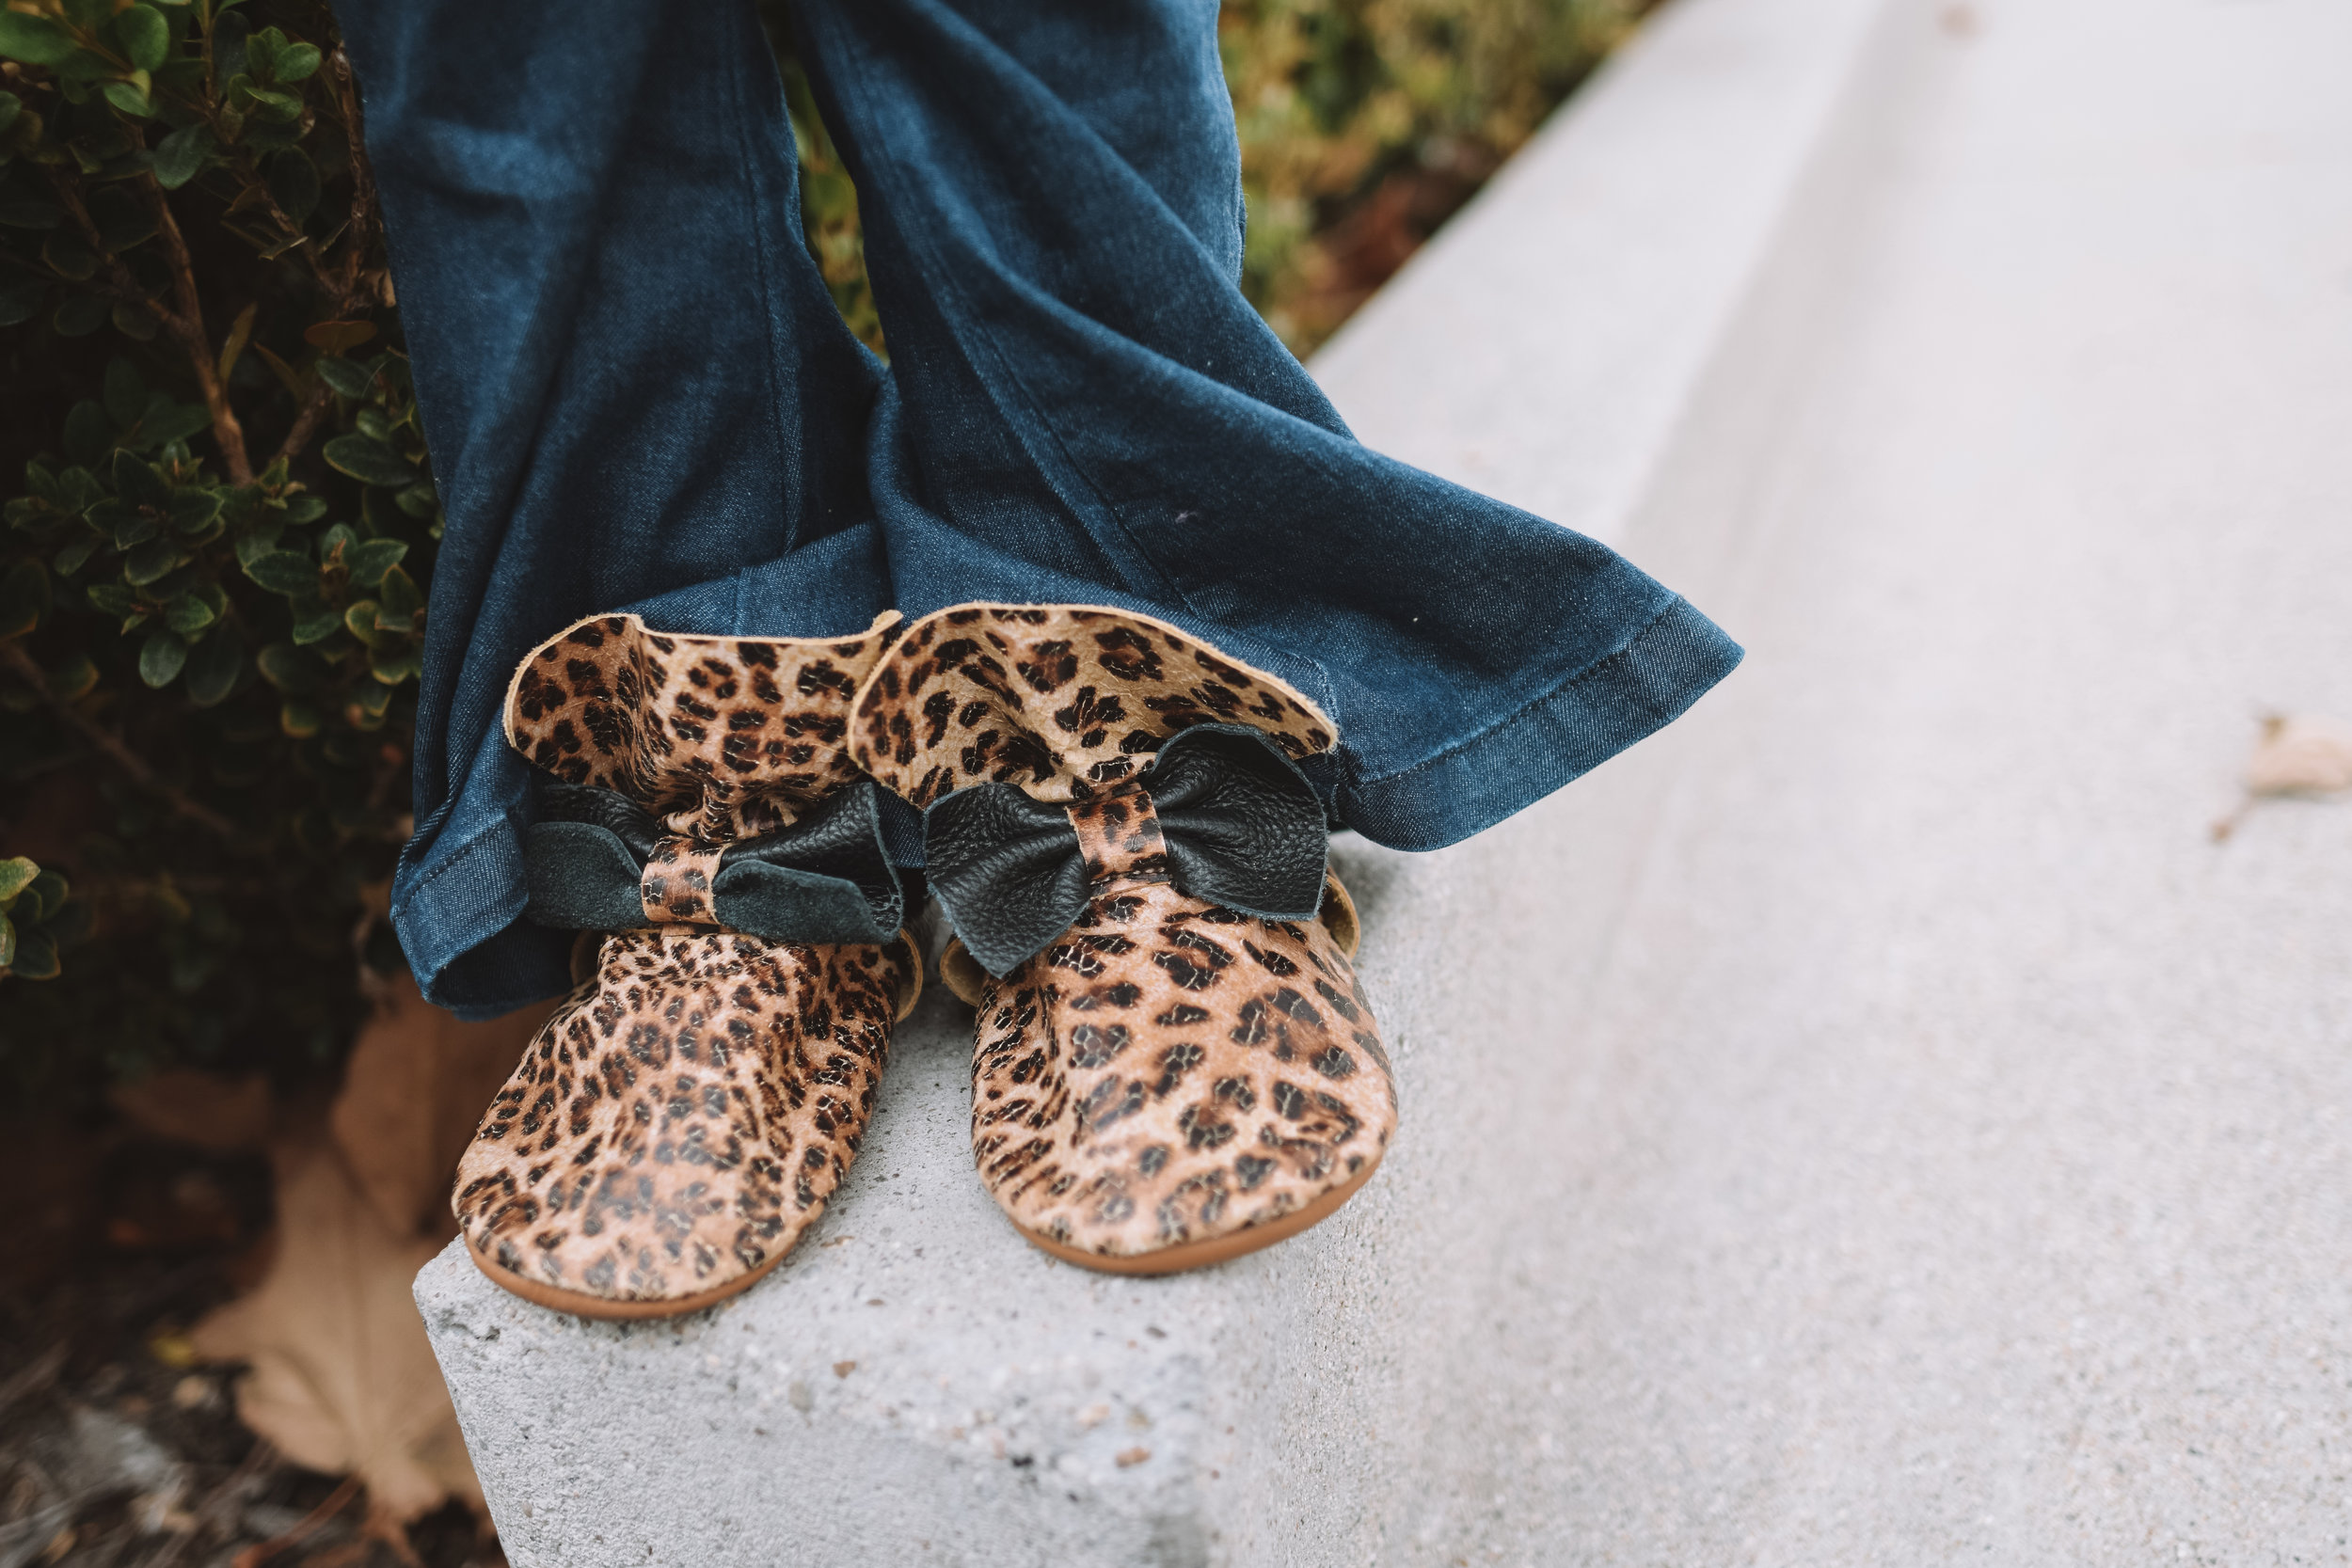 Baby Kids Leopard Print Boots Moccasins - The Overwhelmed Mommy Blogger